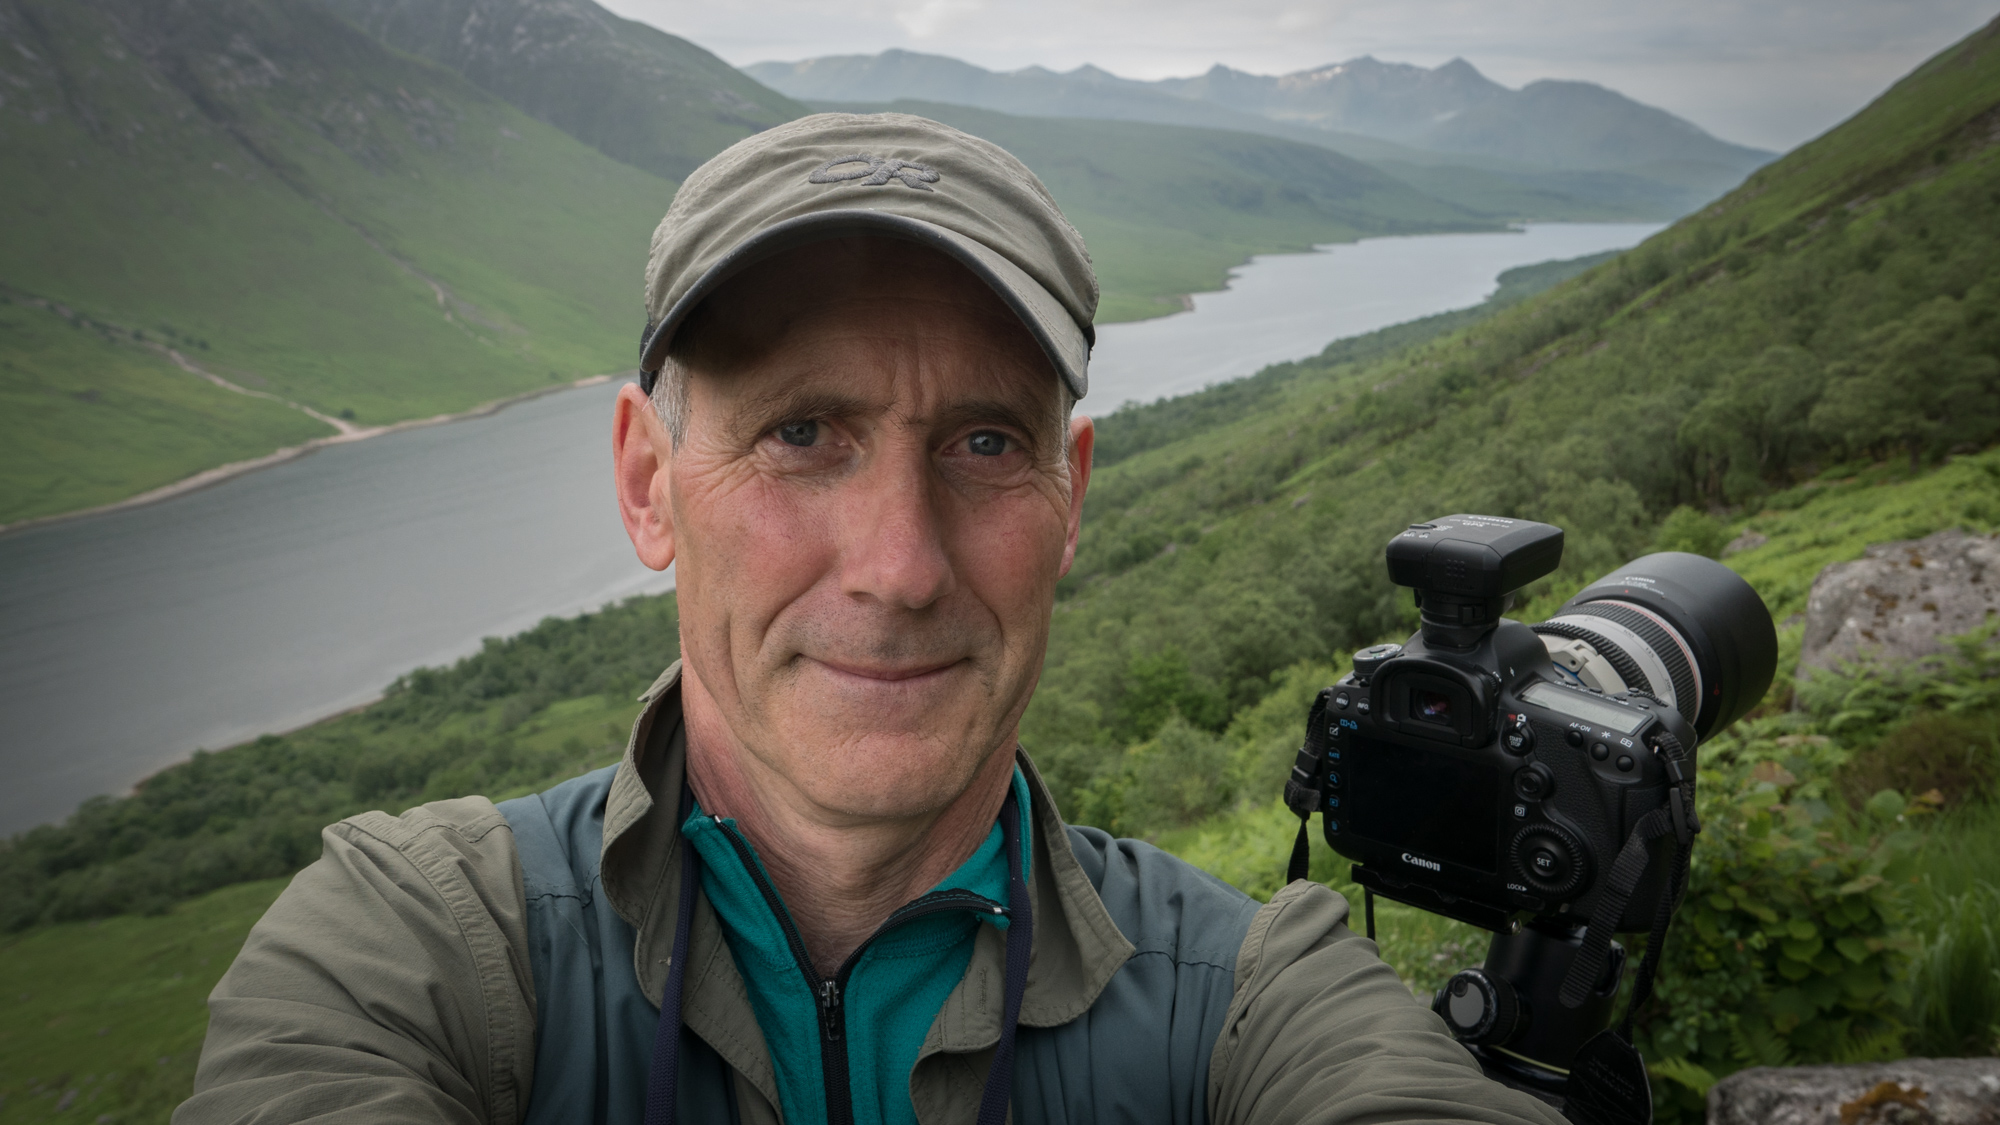 Older man taking a selfie photo with steep sided green slopes behind leading to a long, thin body of water